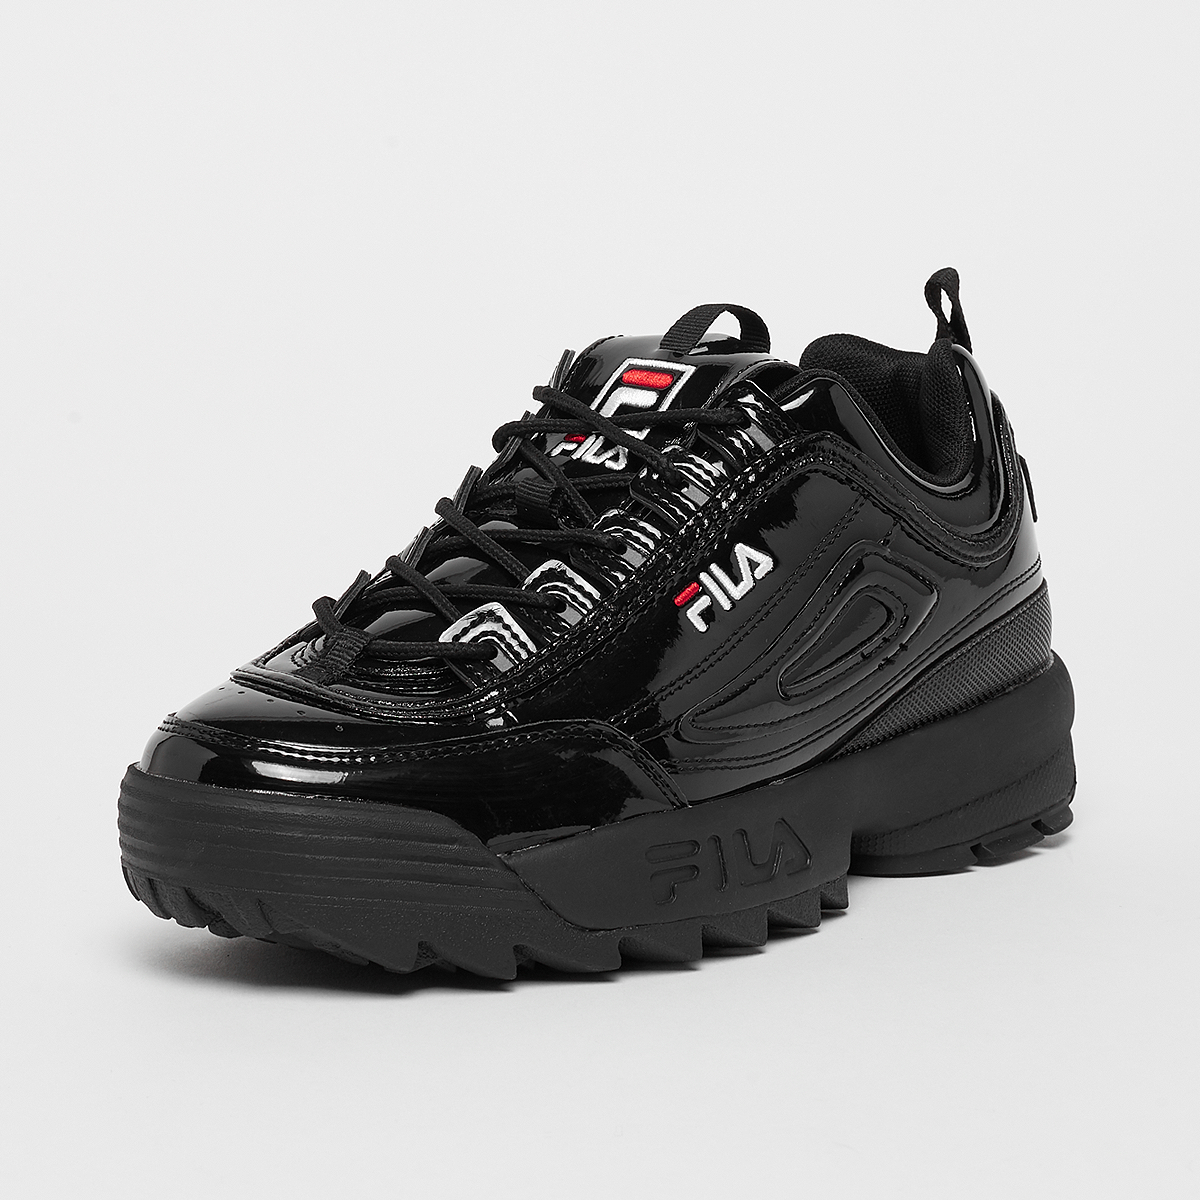 FILA WMN Heritage Disruptor P Low in schwarz 1010746.12V BLACKBLACK | everysize